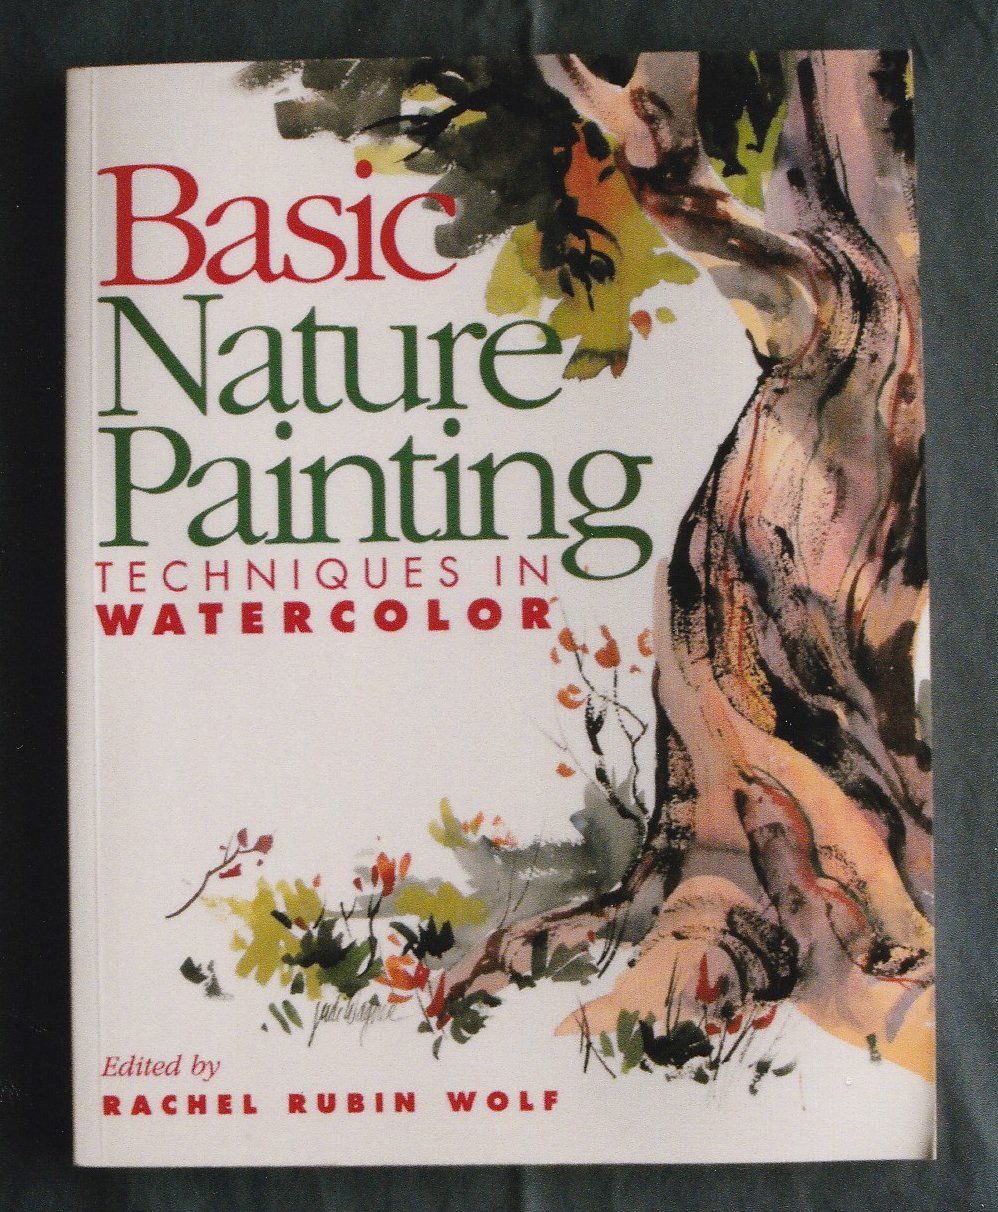 Book Cover Watercolor Painting ~ Basic nature painting techniques in watercolor paperback book